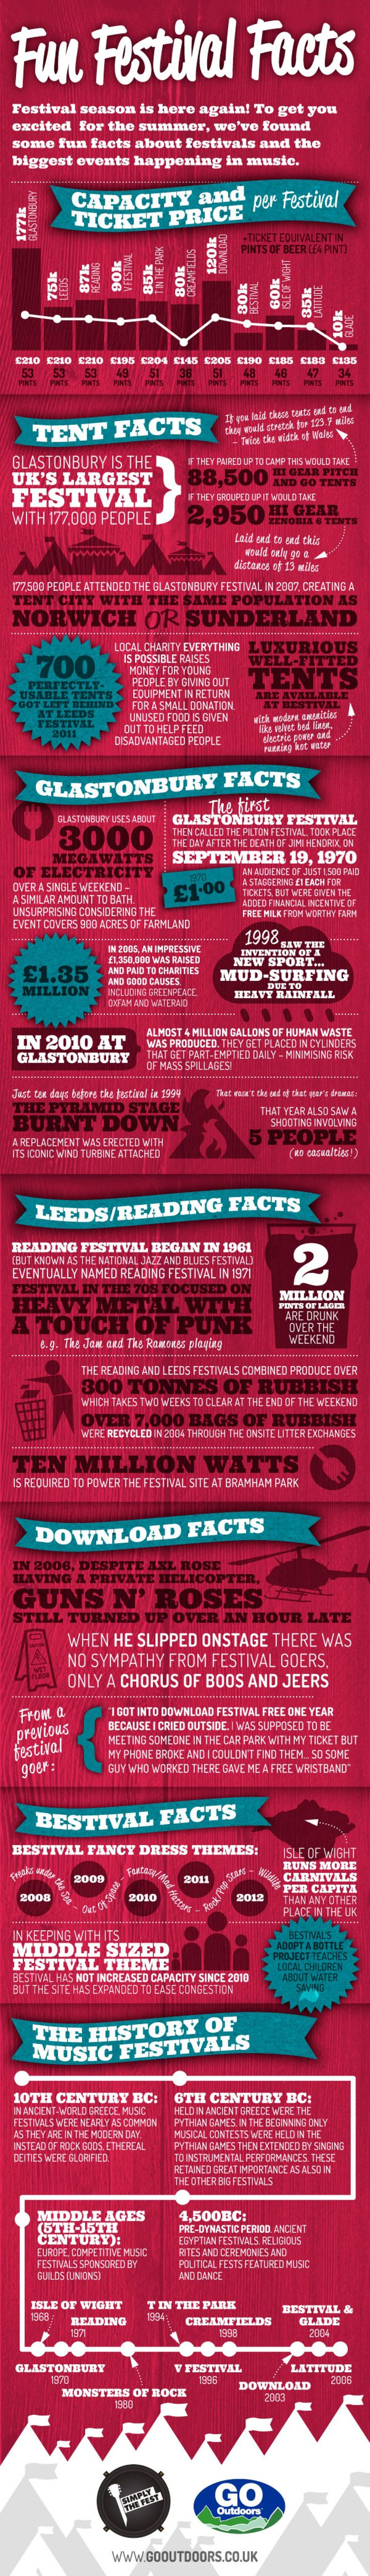 Fun facts about UK festivals!